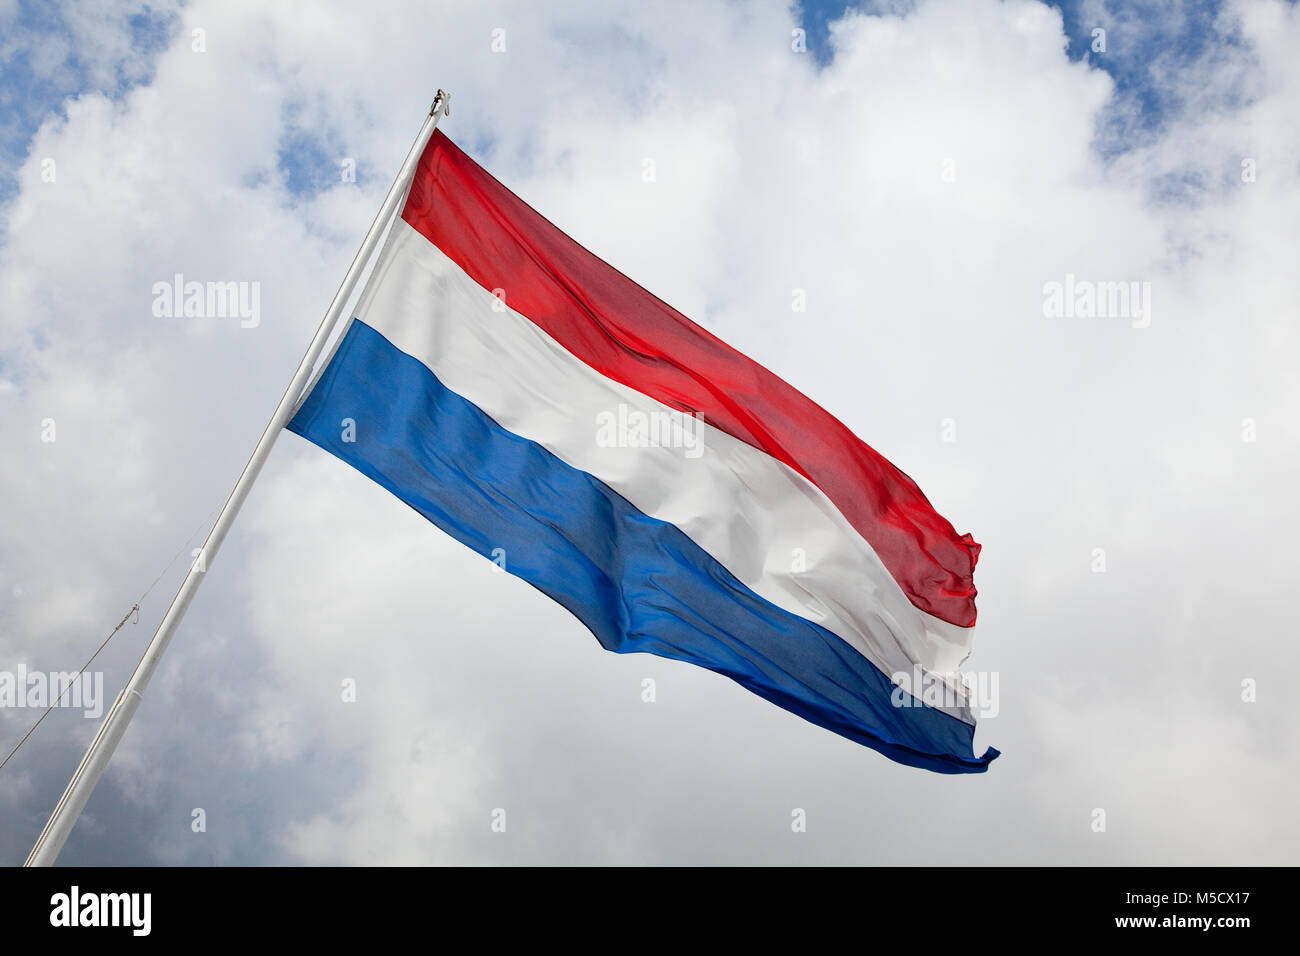 Dutch flag blowing in wind - Stock Image